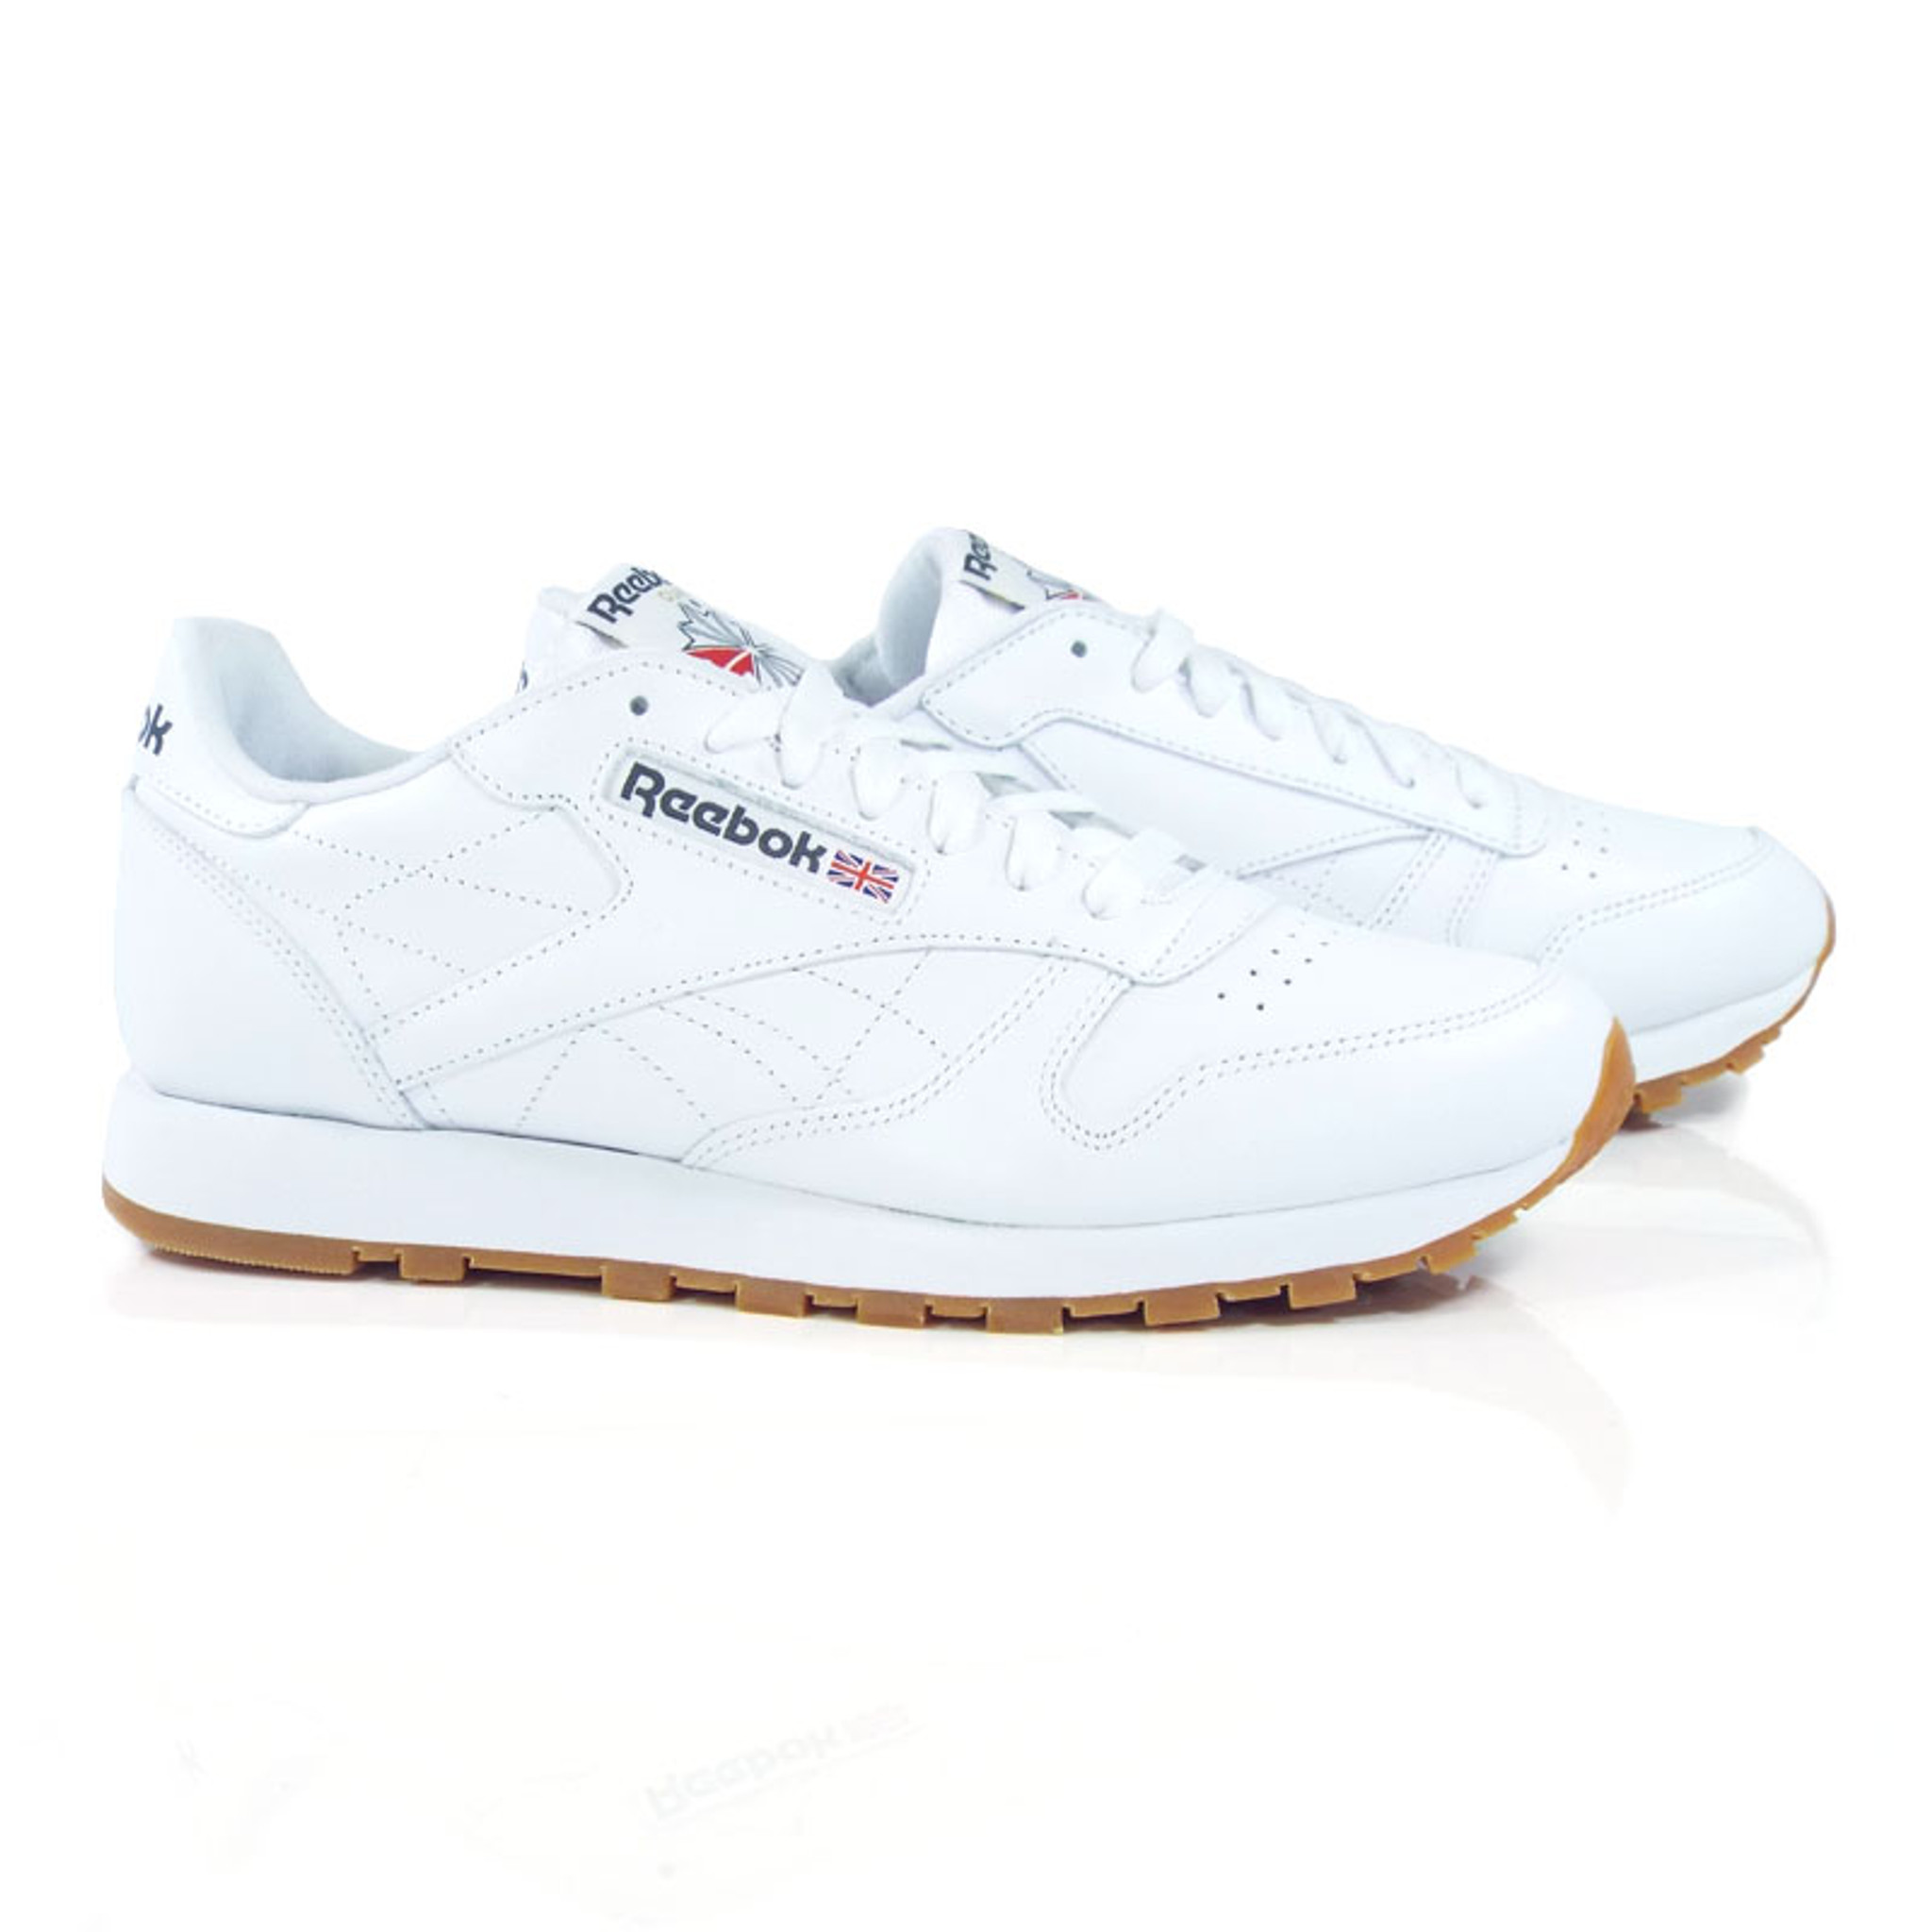 4262fd6bb Reebok Classic Leather Shoes - White/Gum - Detroit City Skateboards Co.